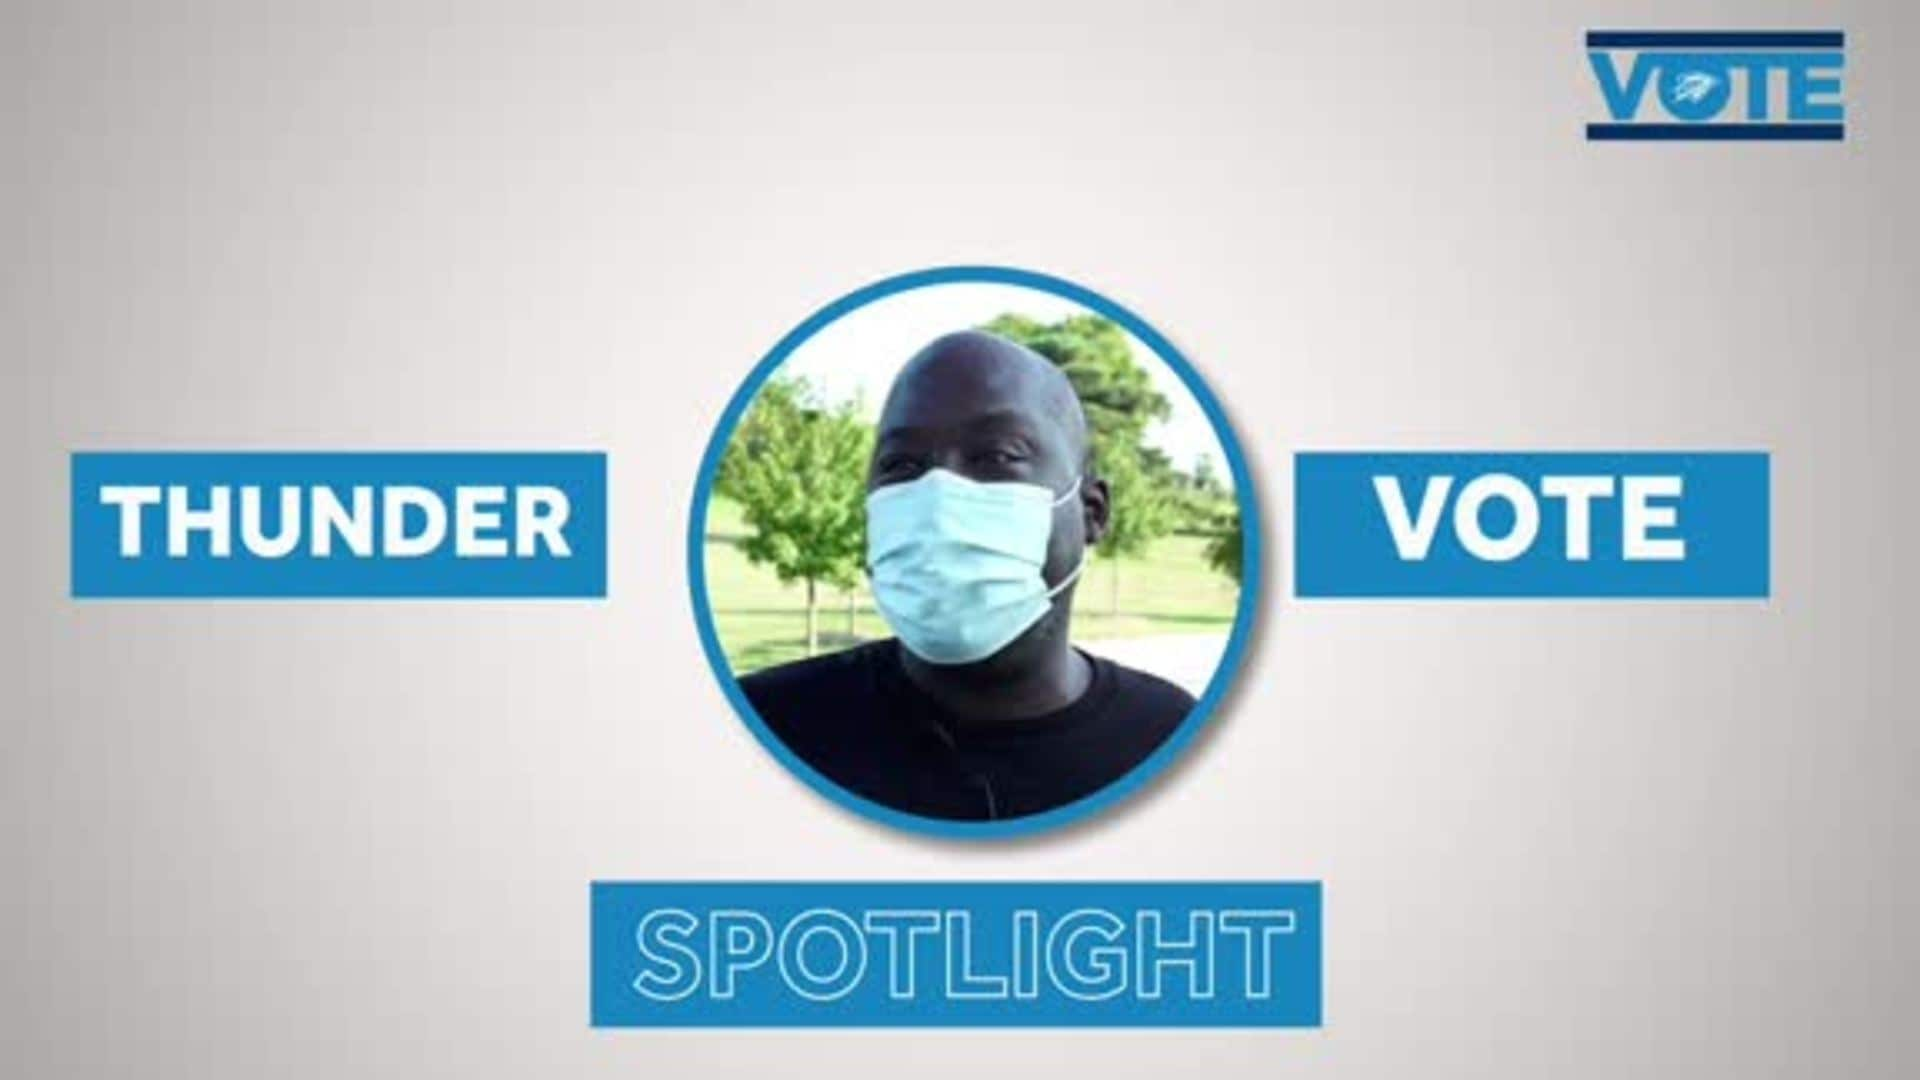 Thunder VOTE Spotlight: Voice for the Students